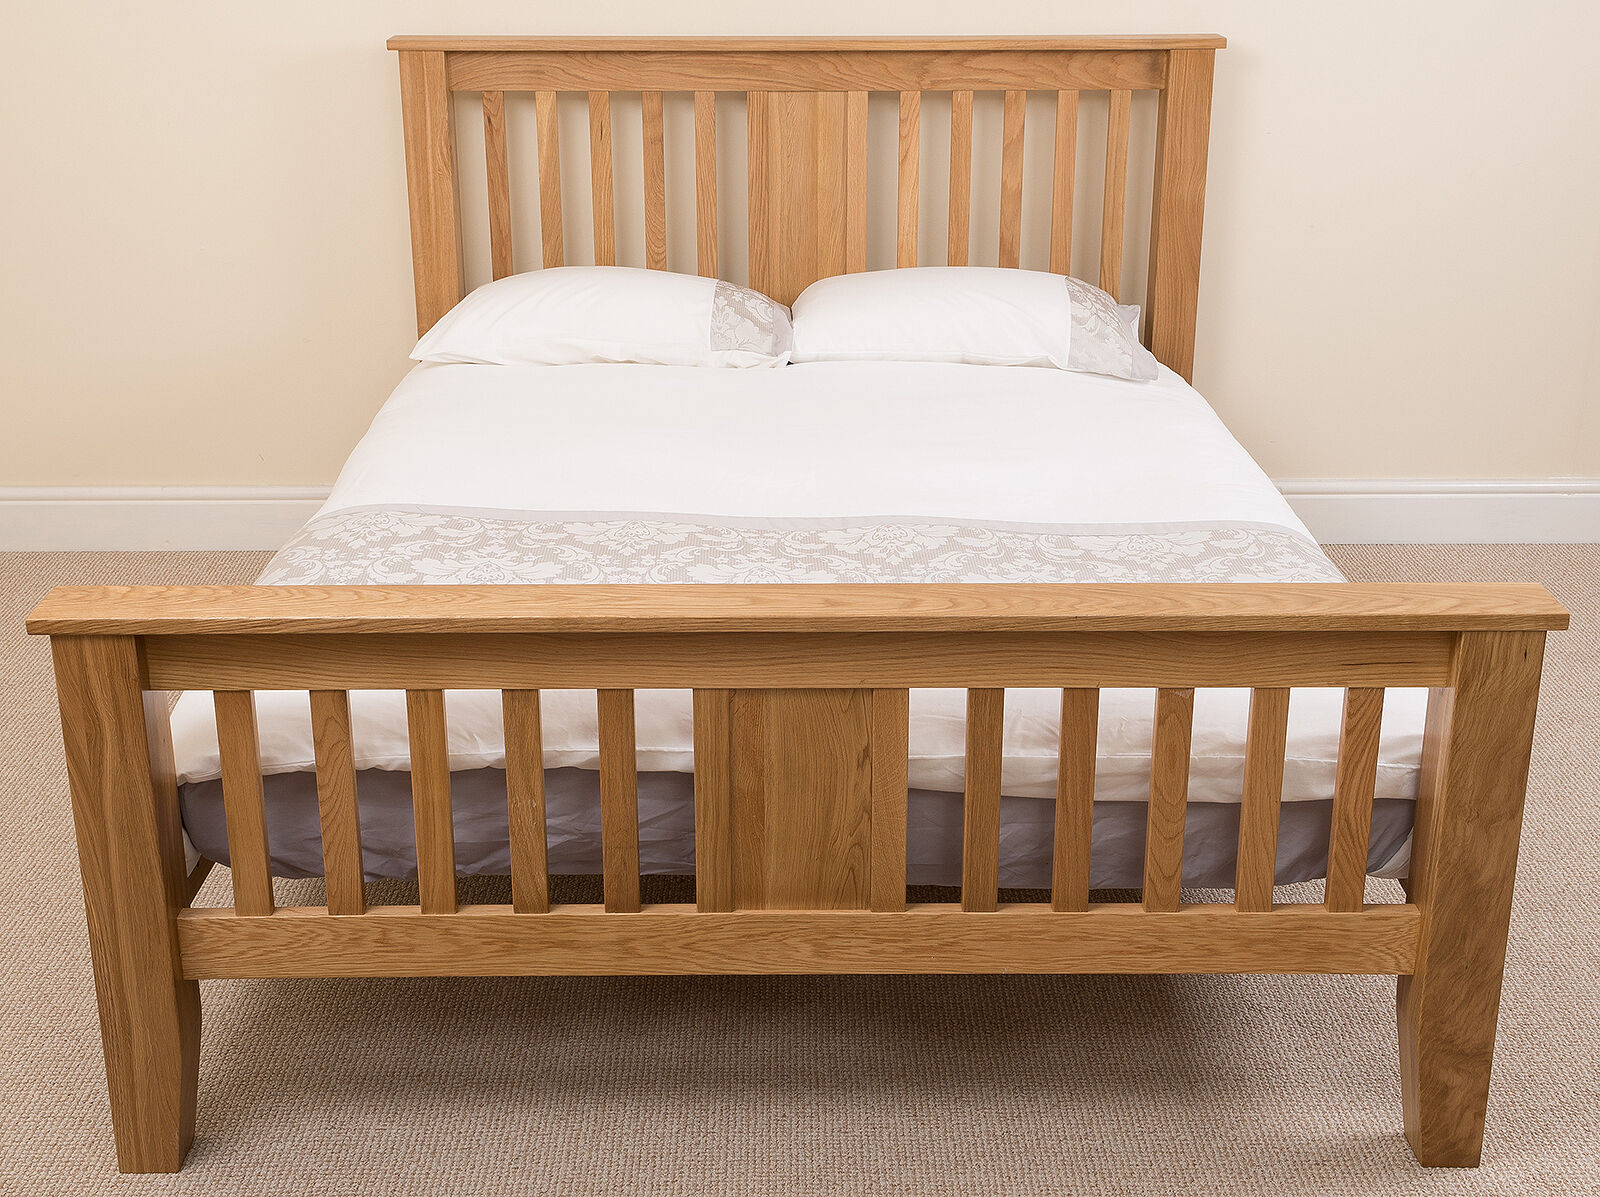 Super King Bed Frames Australia Boston Solid Oak Wood 6ft Super King Size Bed Frame Wooden